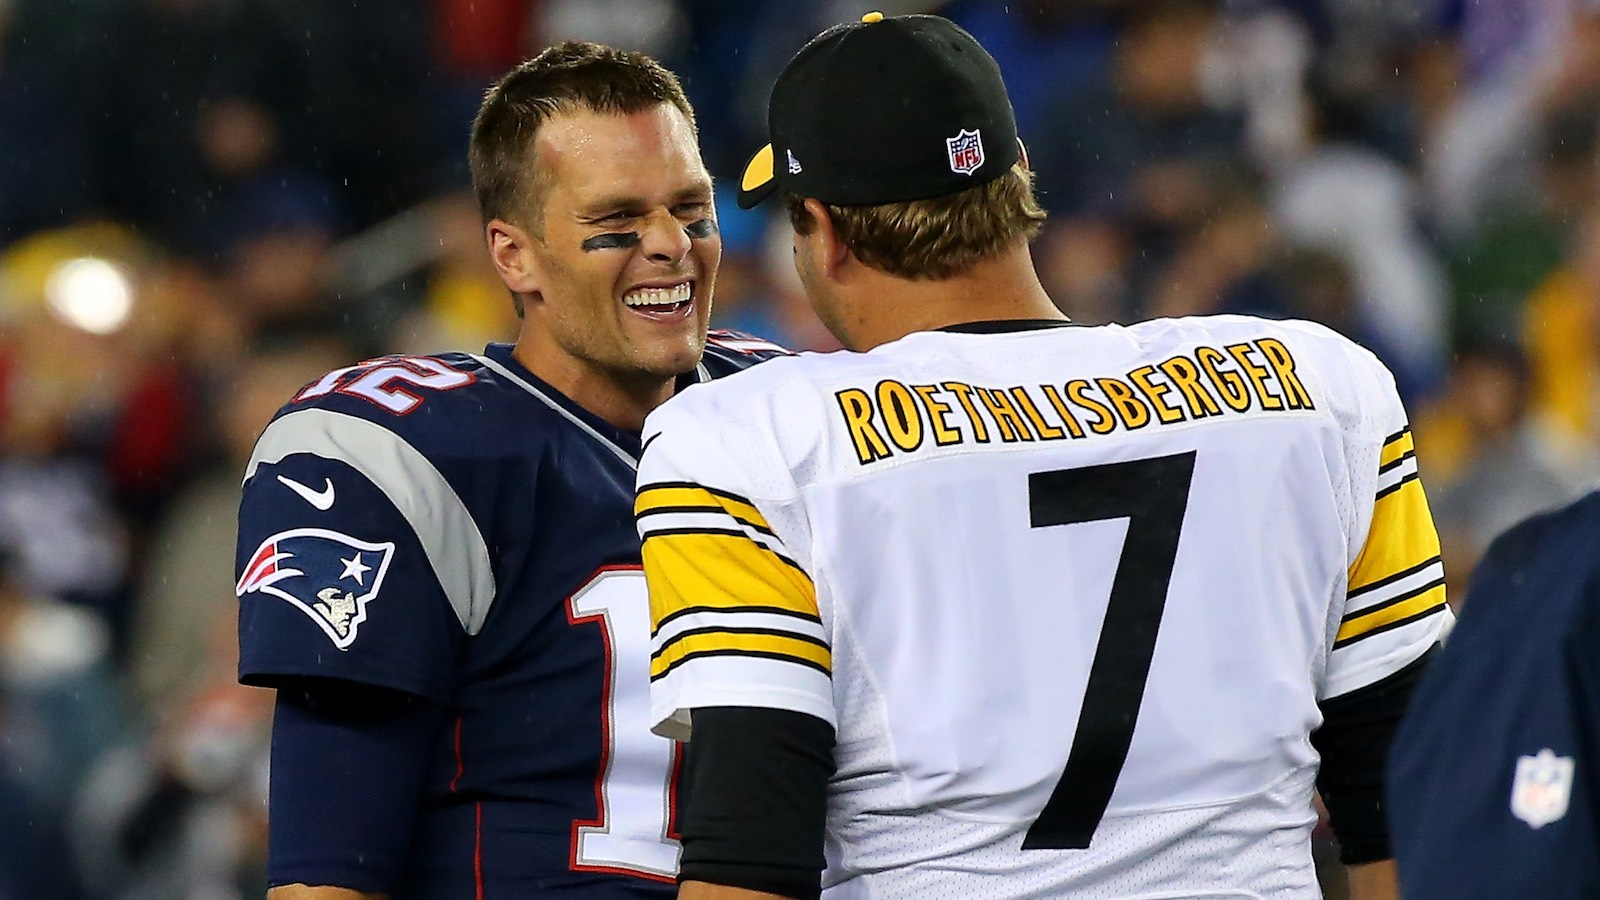 pittsburgh-steelers-v-new-england-patriots-2